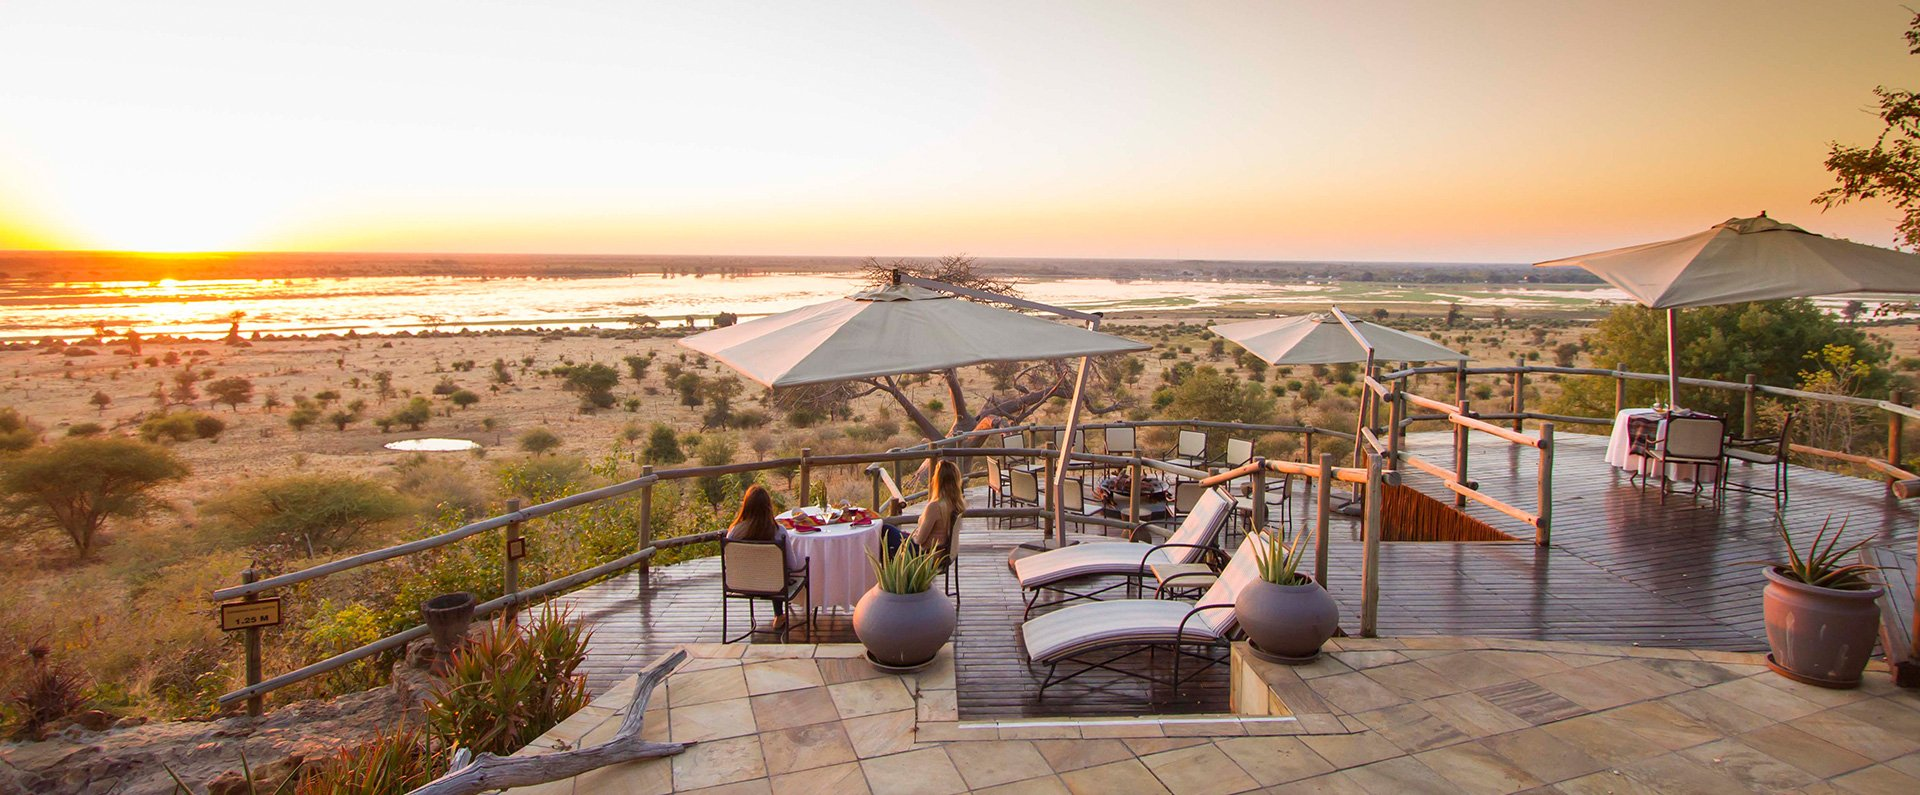 Ngoma Safari Lodge Chobe Sunset